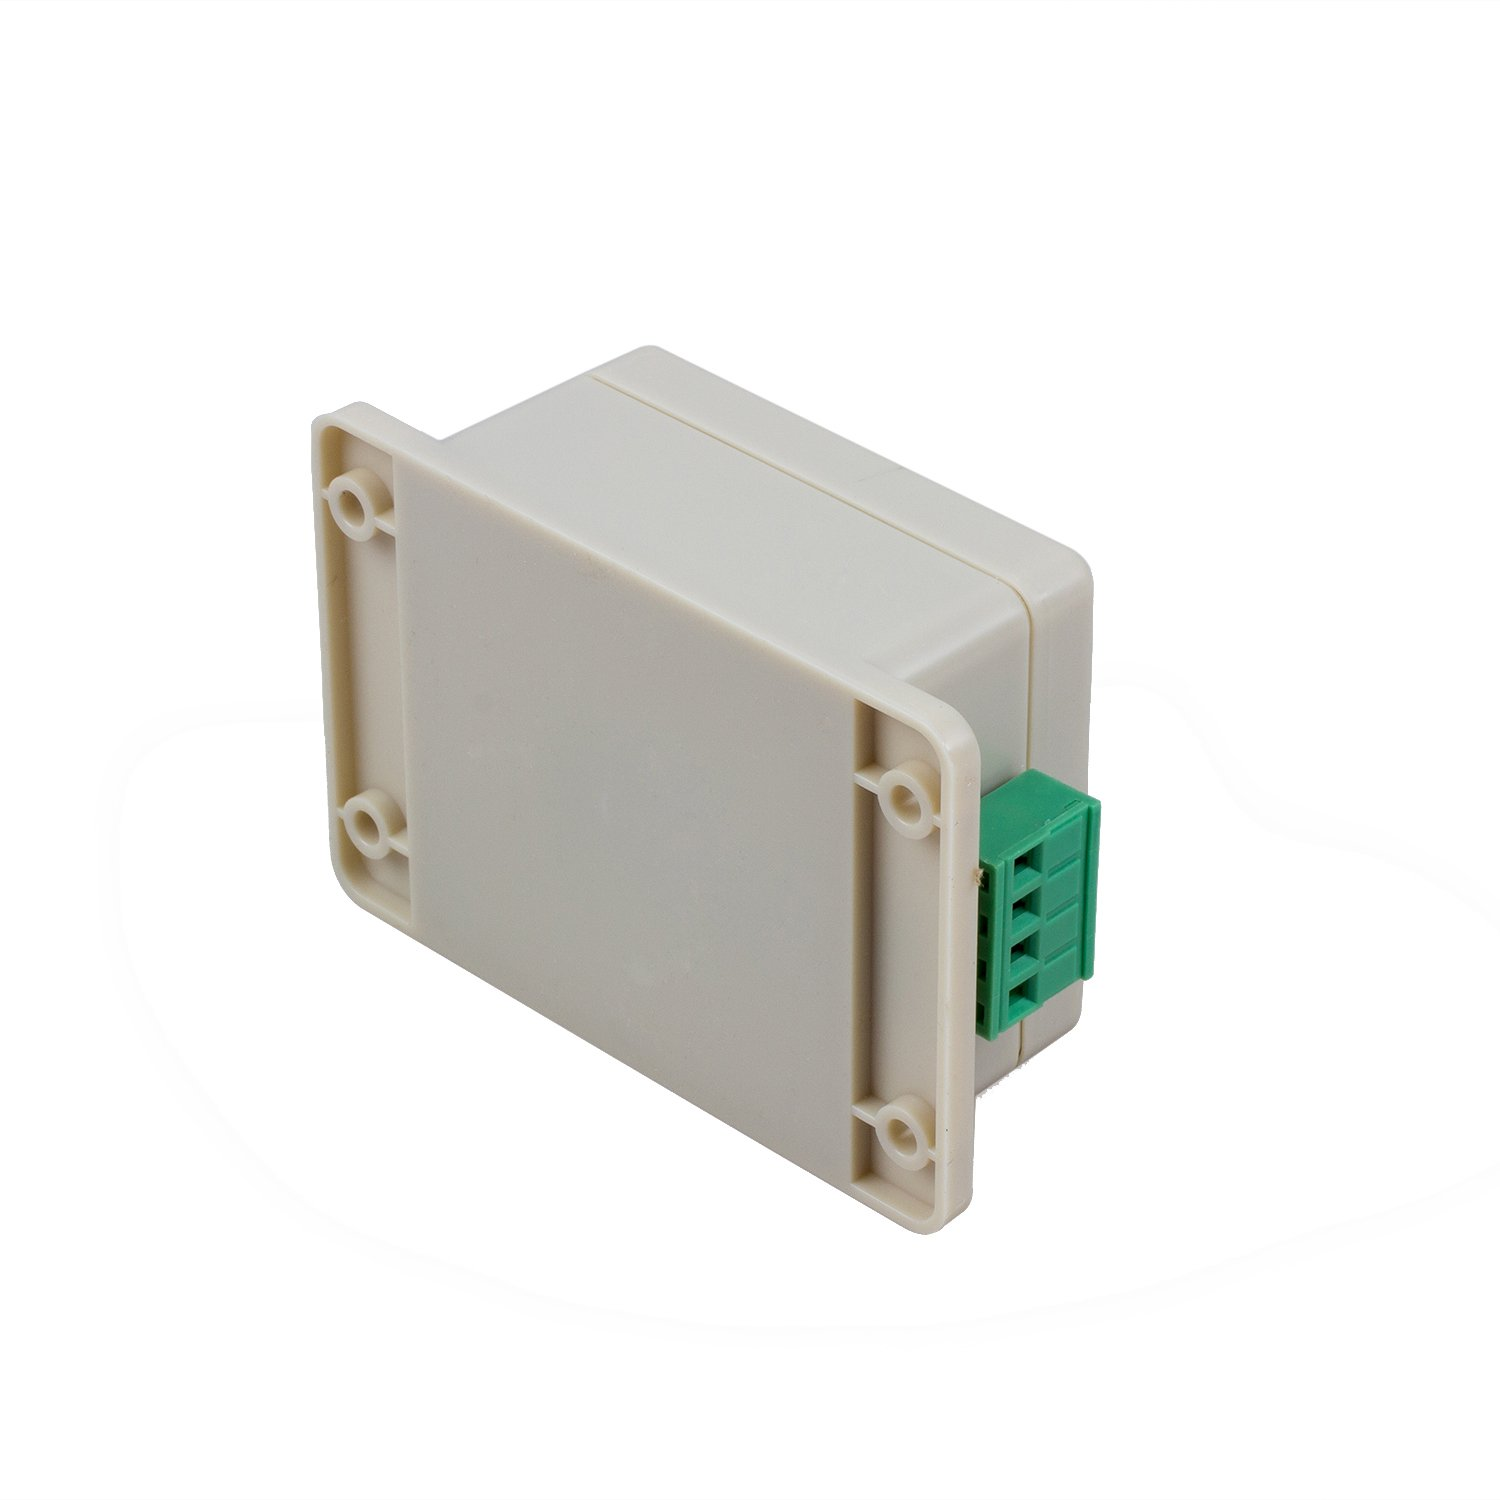 Bestled Pwm Dimming Controller For Led Lights Ribbon Strip 12 Innovative Circuit Ict120124a Comm Series 120vac 12vdc 4 Amp 24 Volt 12v 24v 8 Electrical Dimmer Switches Home Commercial Industrial